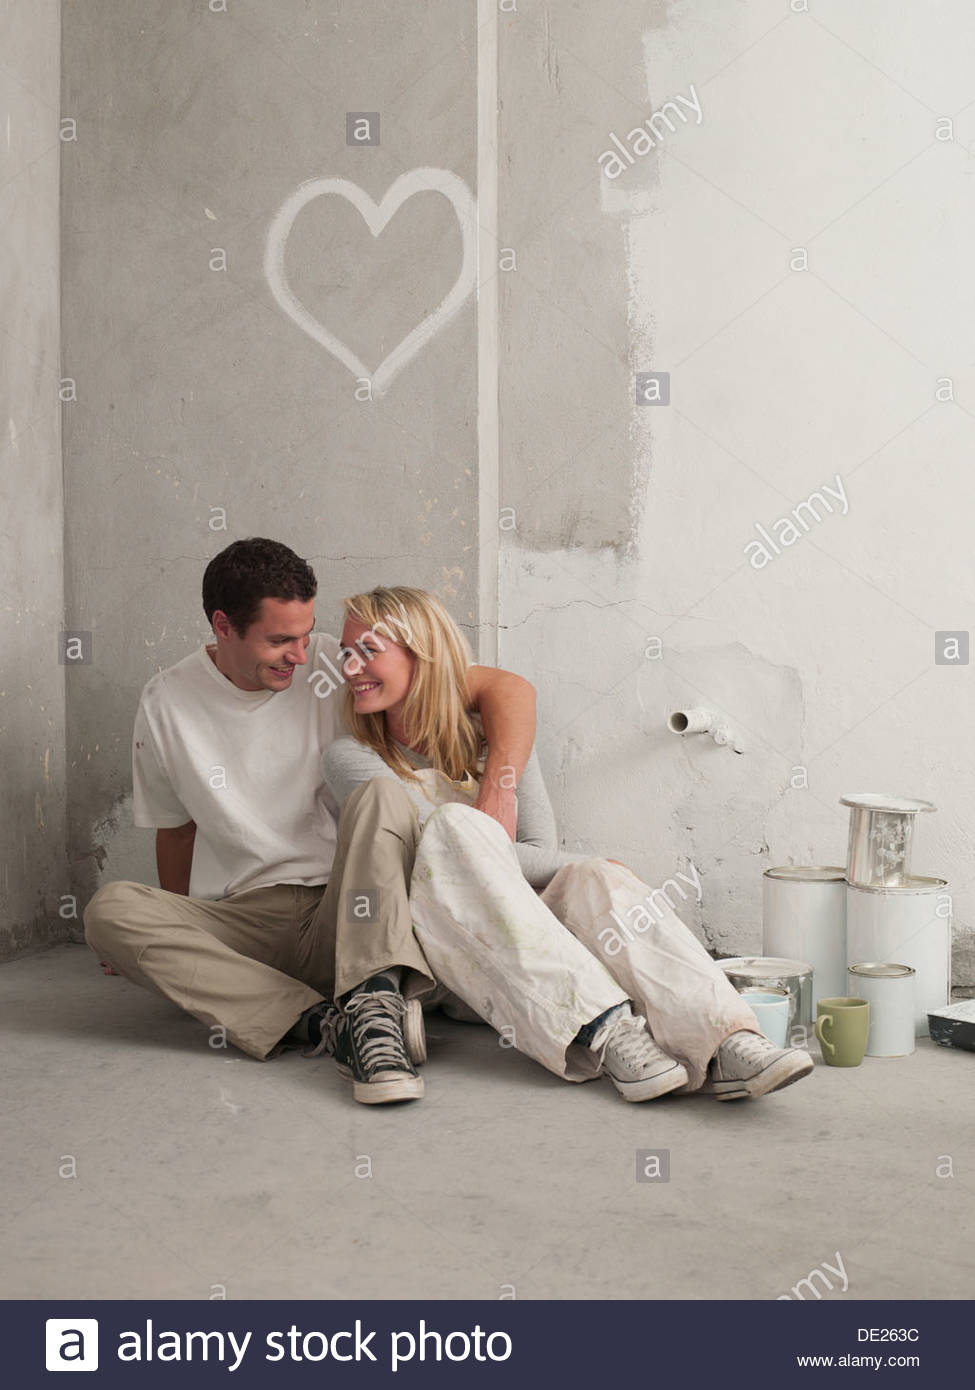 Couple sitting under painted heart on wall - Stock Image